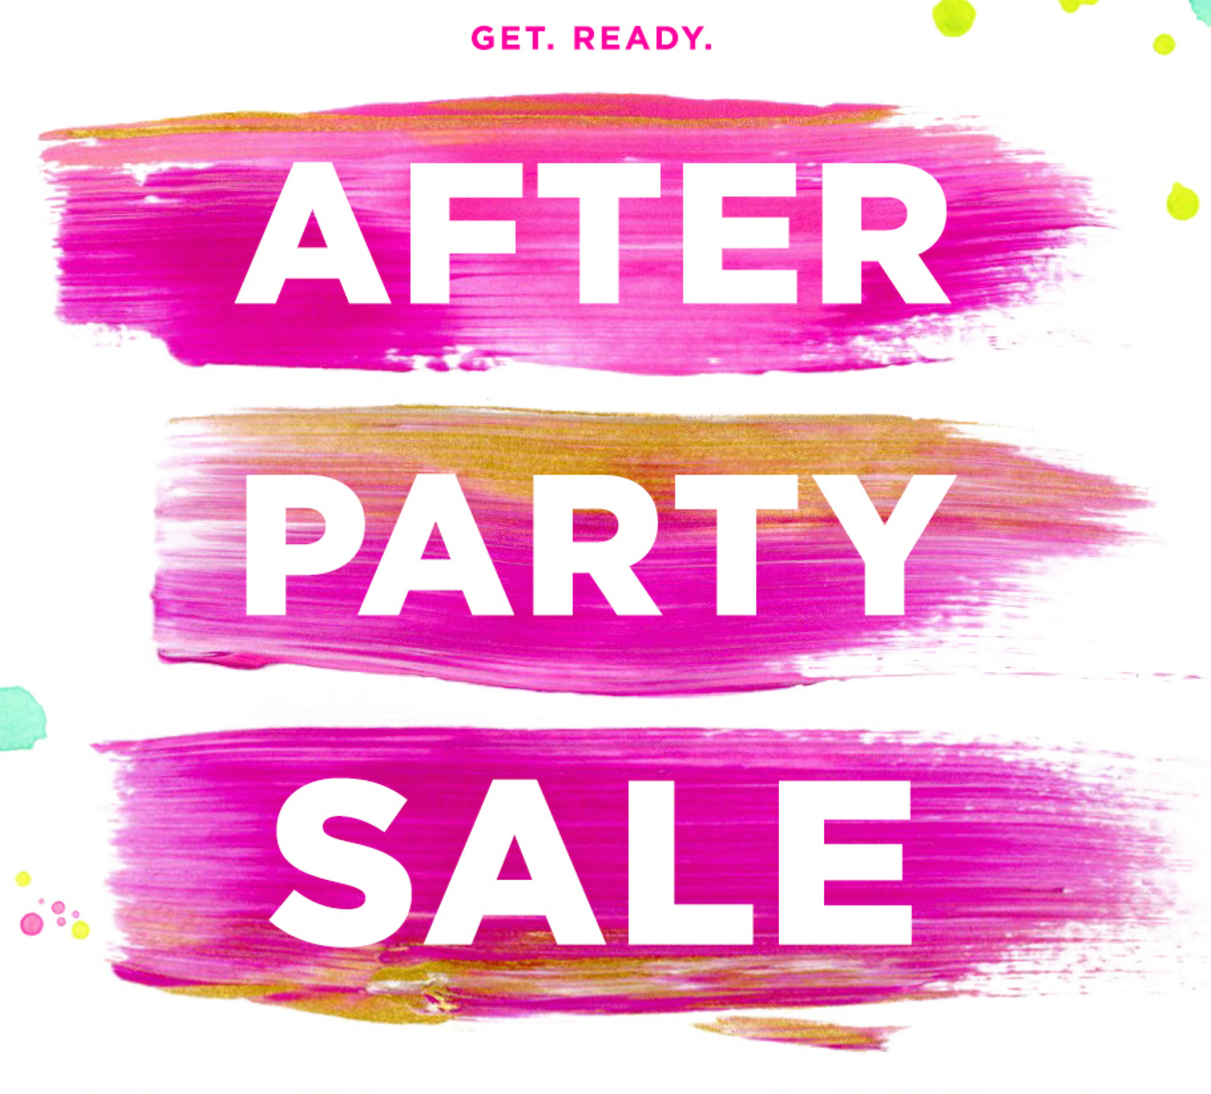 a0dab781a8fc11 Good morning Lilly lovers! For those are you that are up and ready to shop  the After Party Sale, be sure to read my last post with my favorite tips  and ...